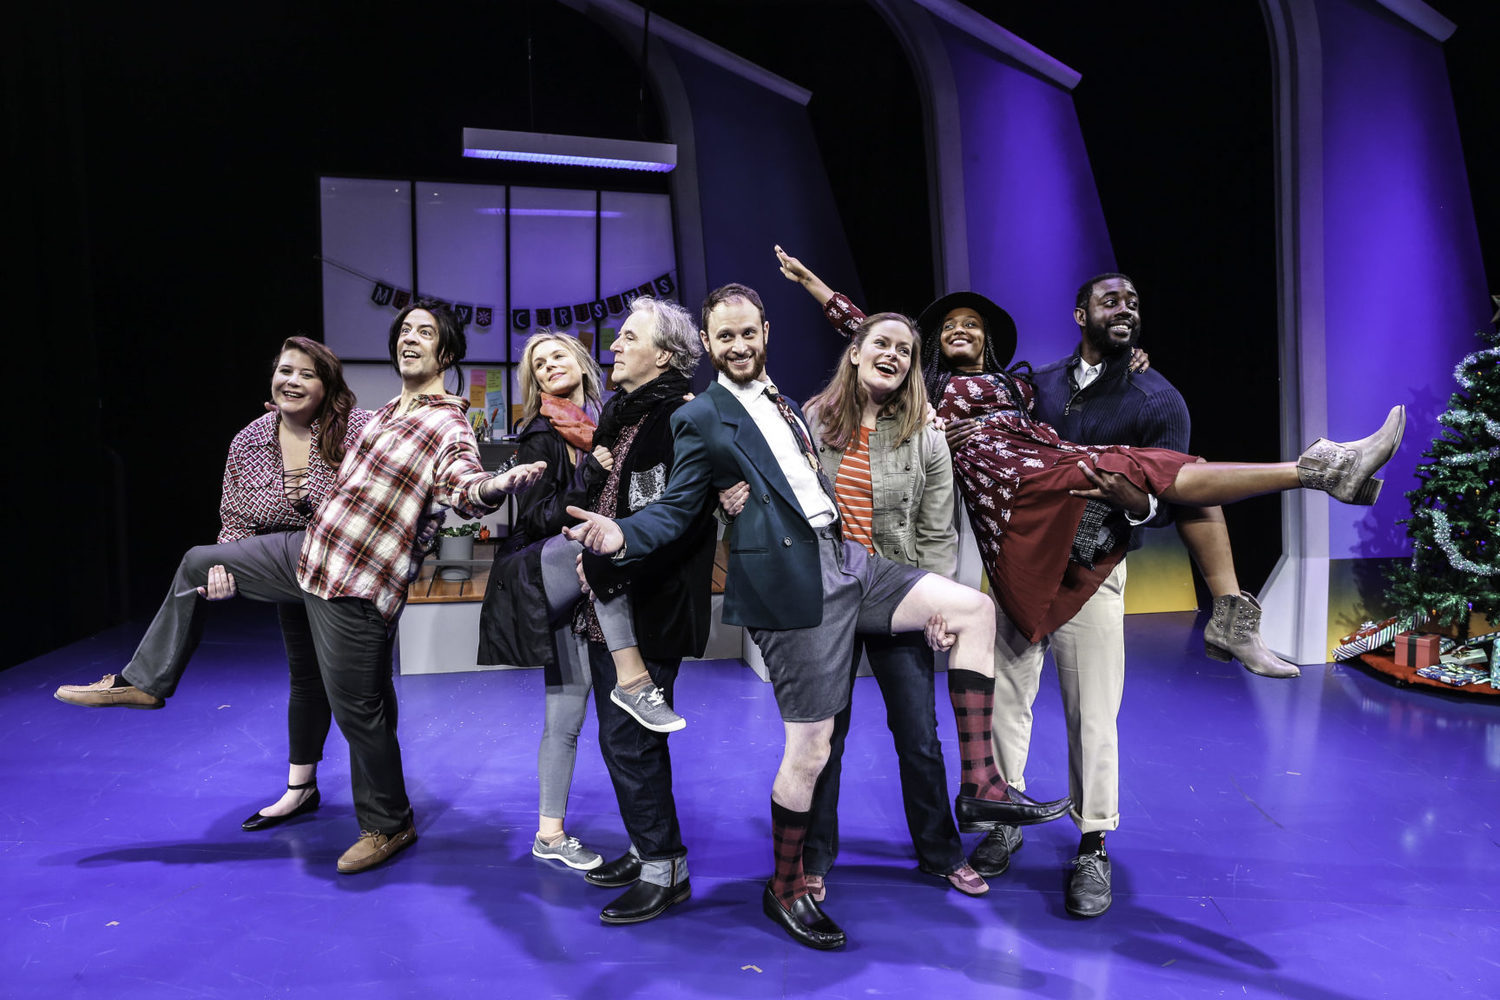 BWW Review: THE SECOND CITY'S LOVE, FACTUALLY at The Kennedy Center